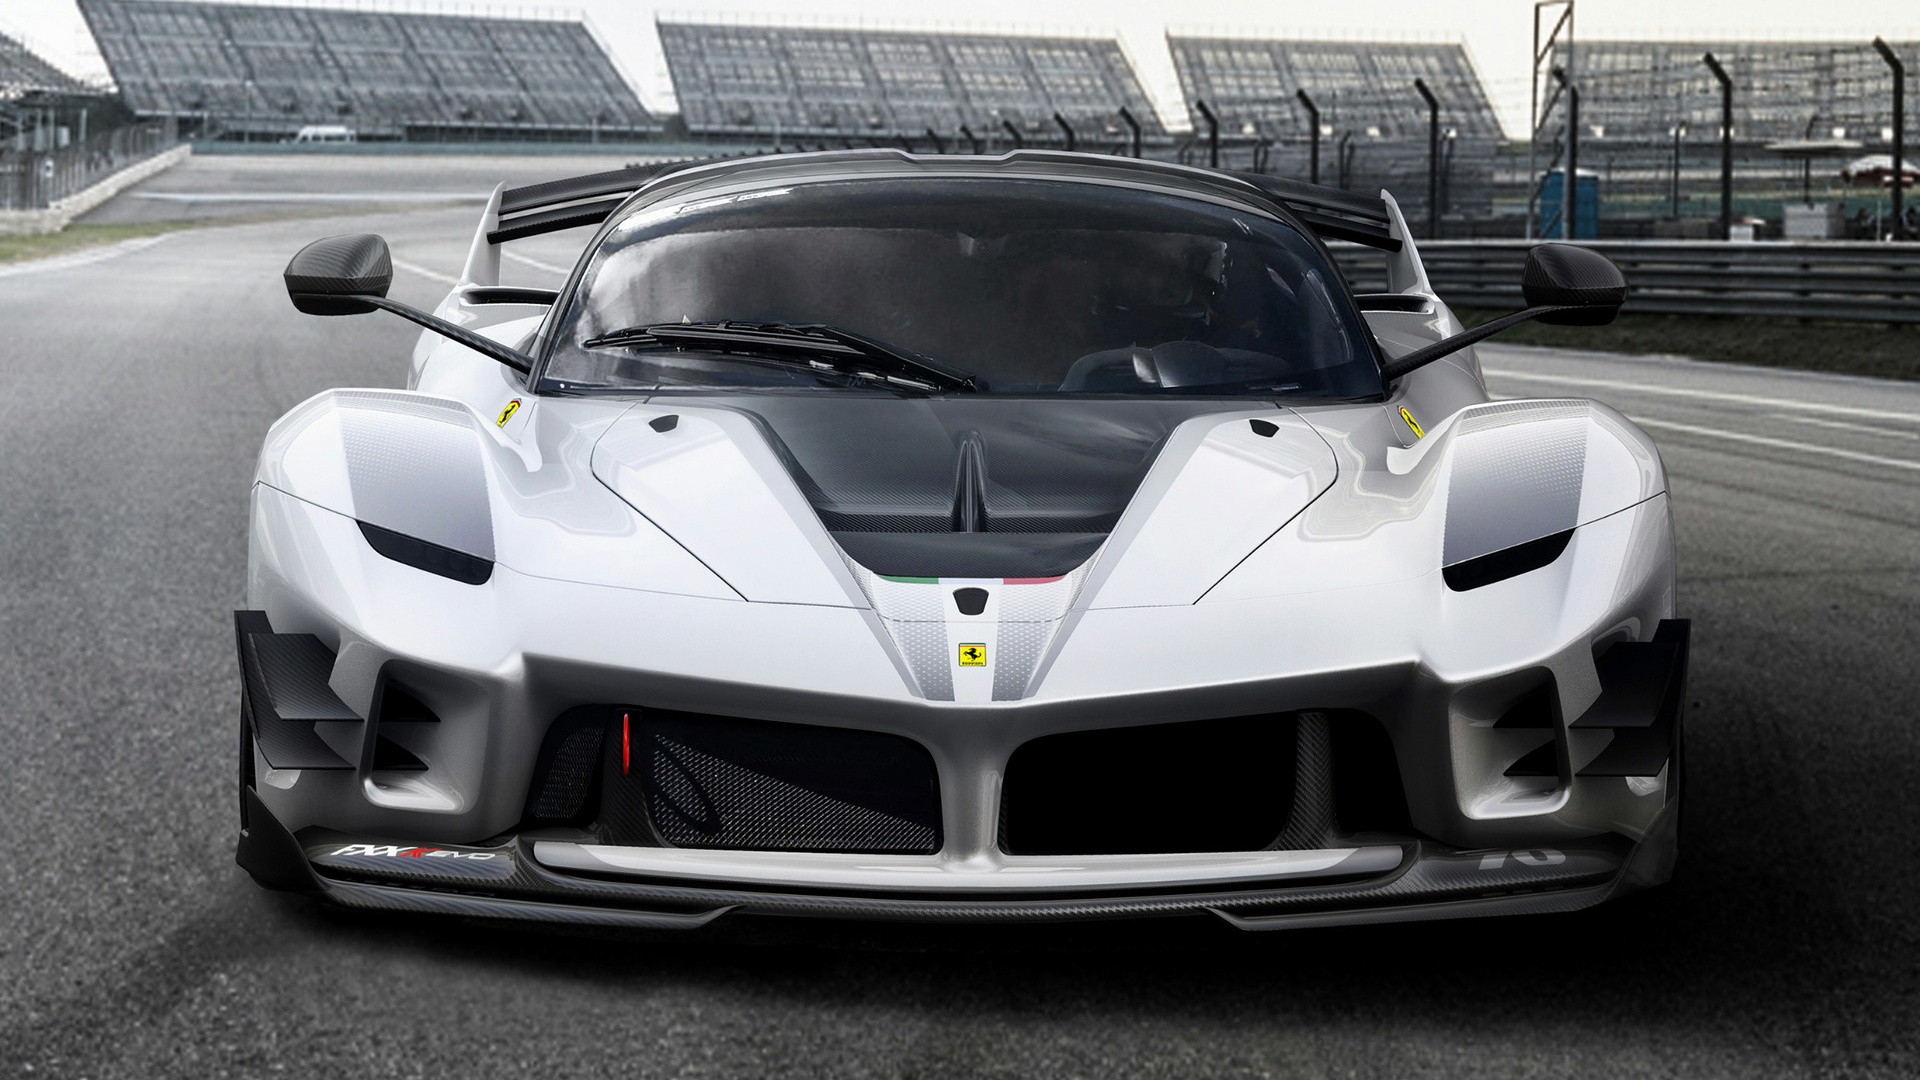 2018 ferrari fxx k evo wallpapers and hd images car pixel. Black Bedroom Furniture Sets. Home Design Ideas